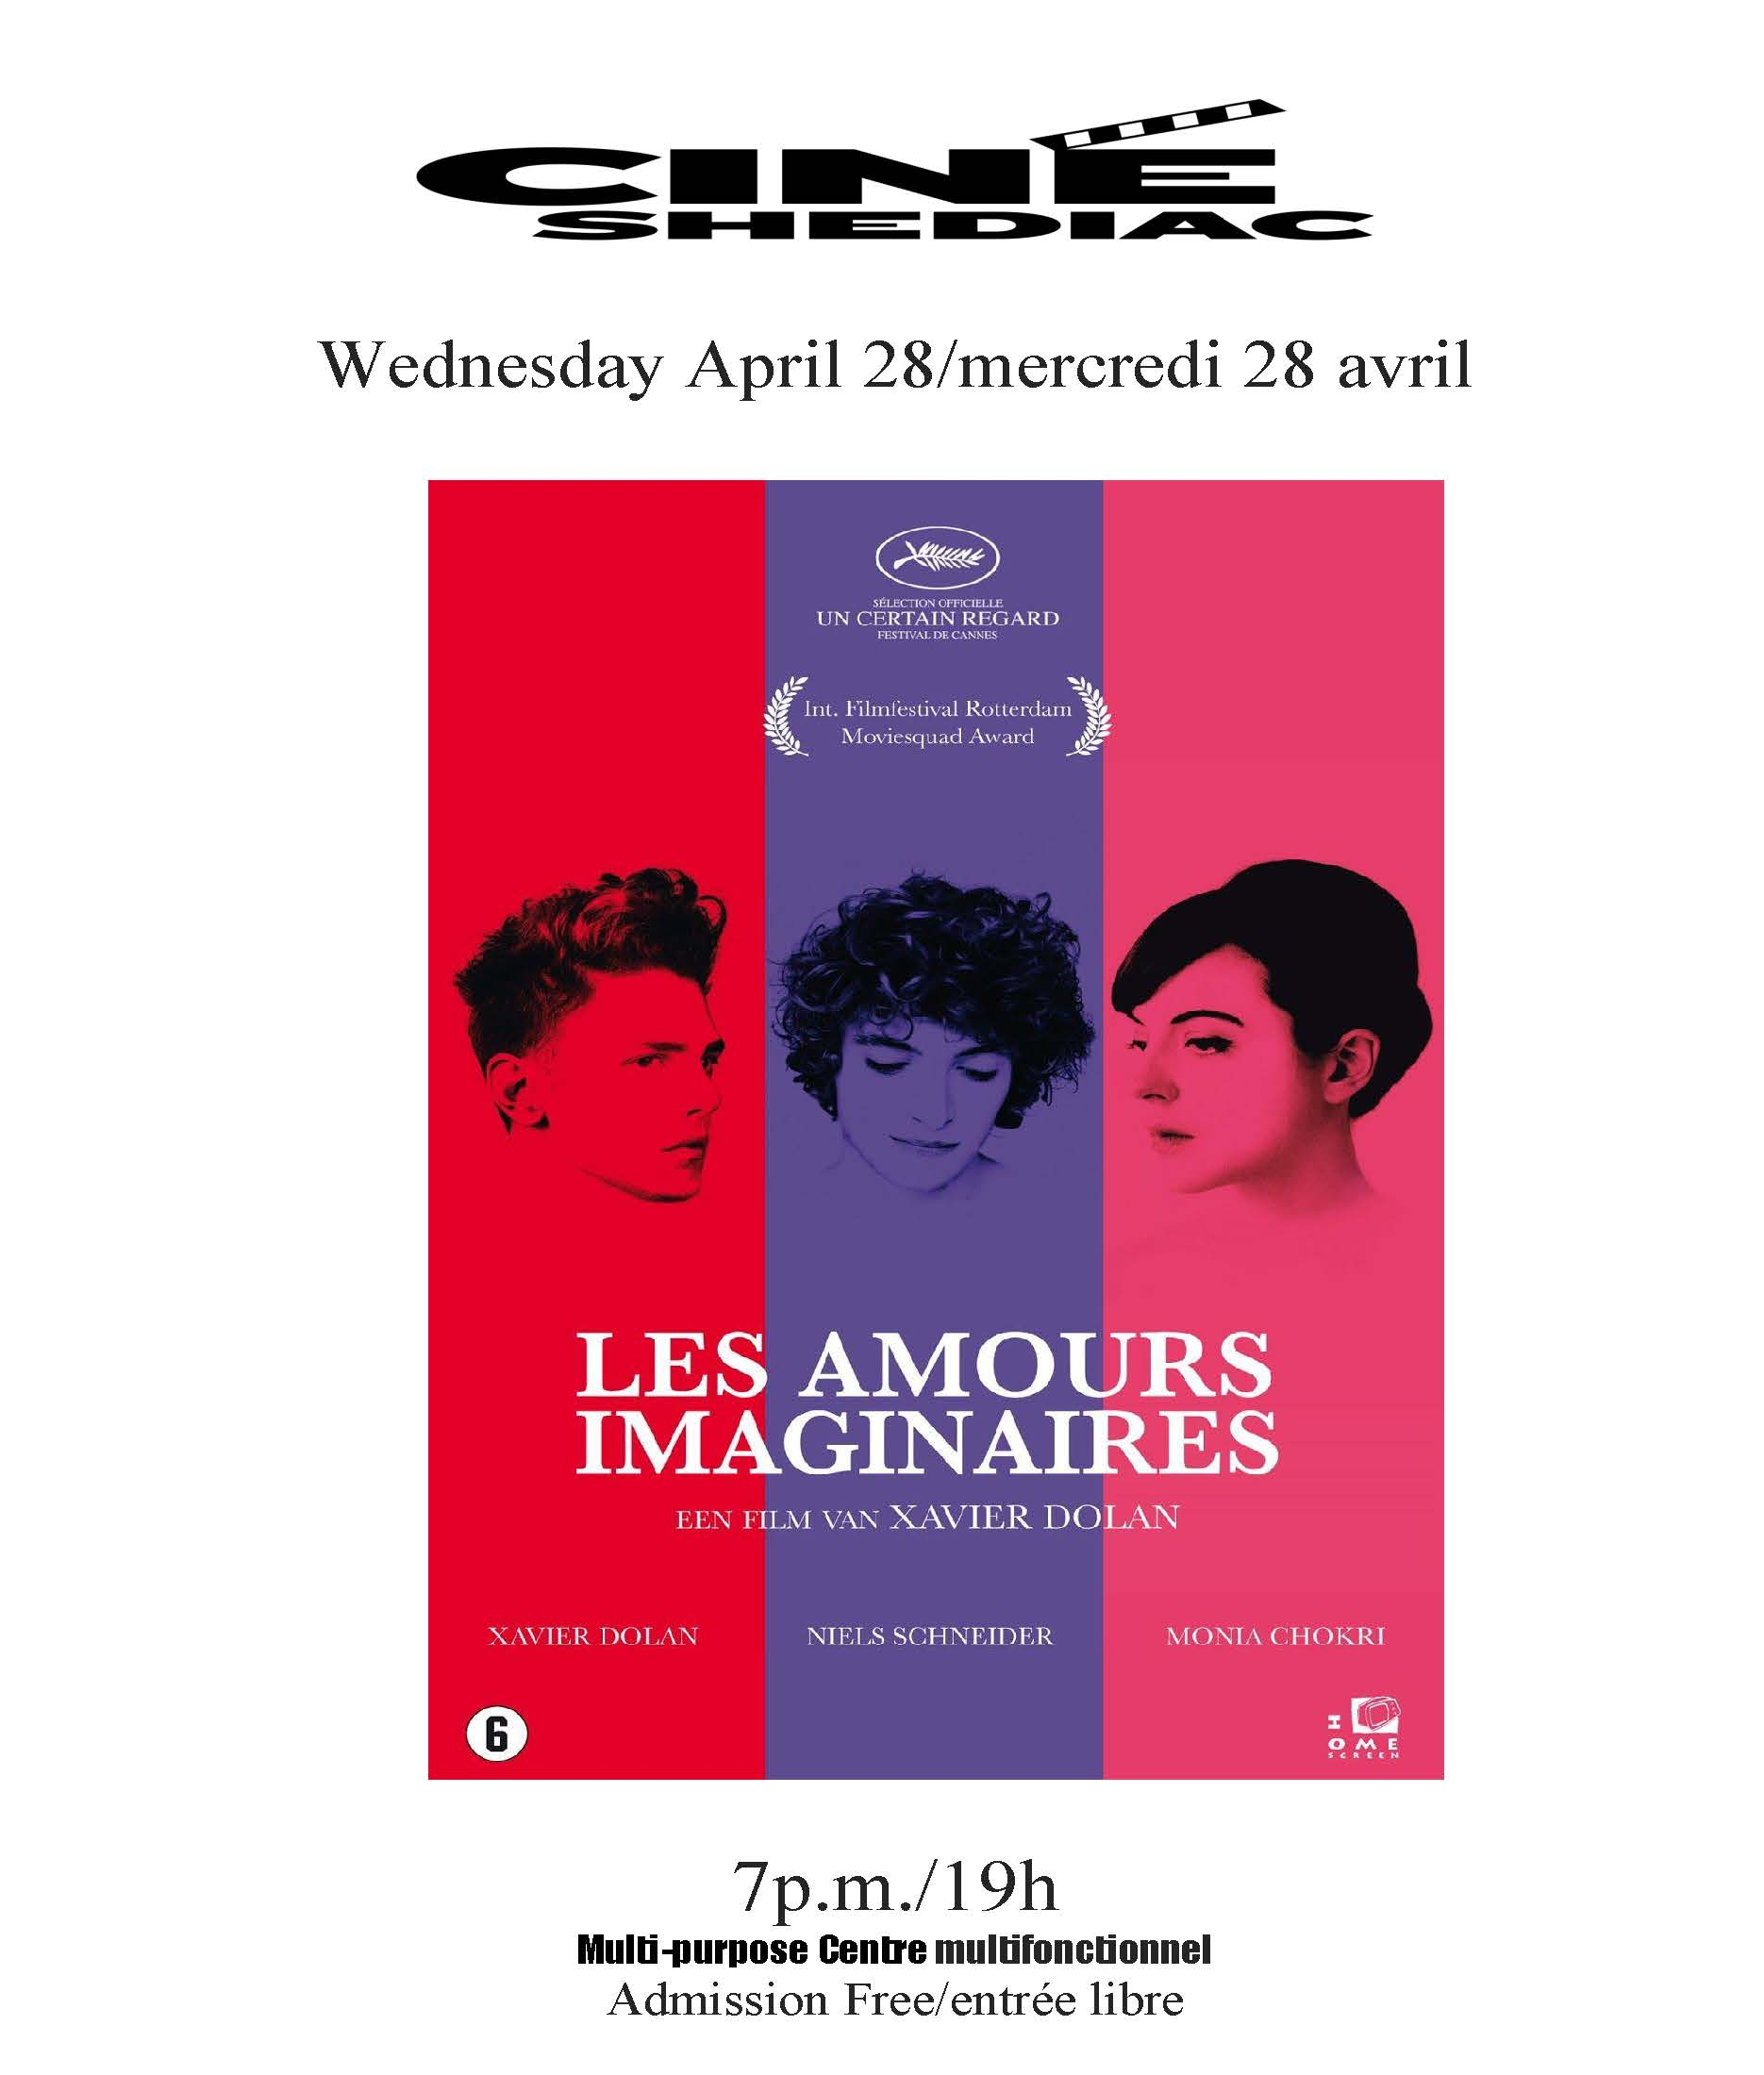 les amours imaginaires 28 avril 2021